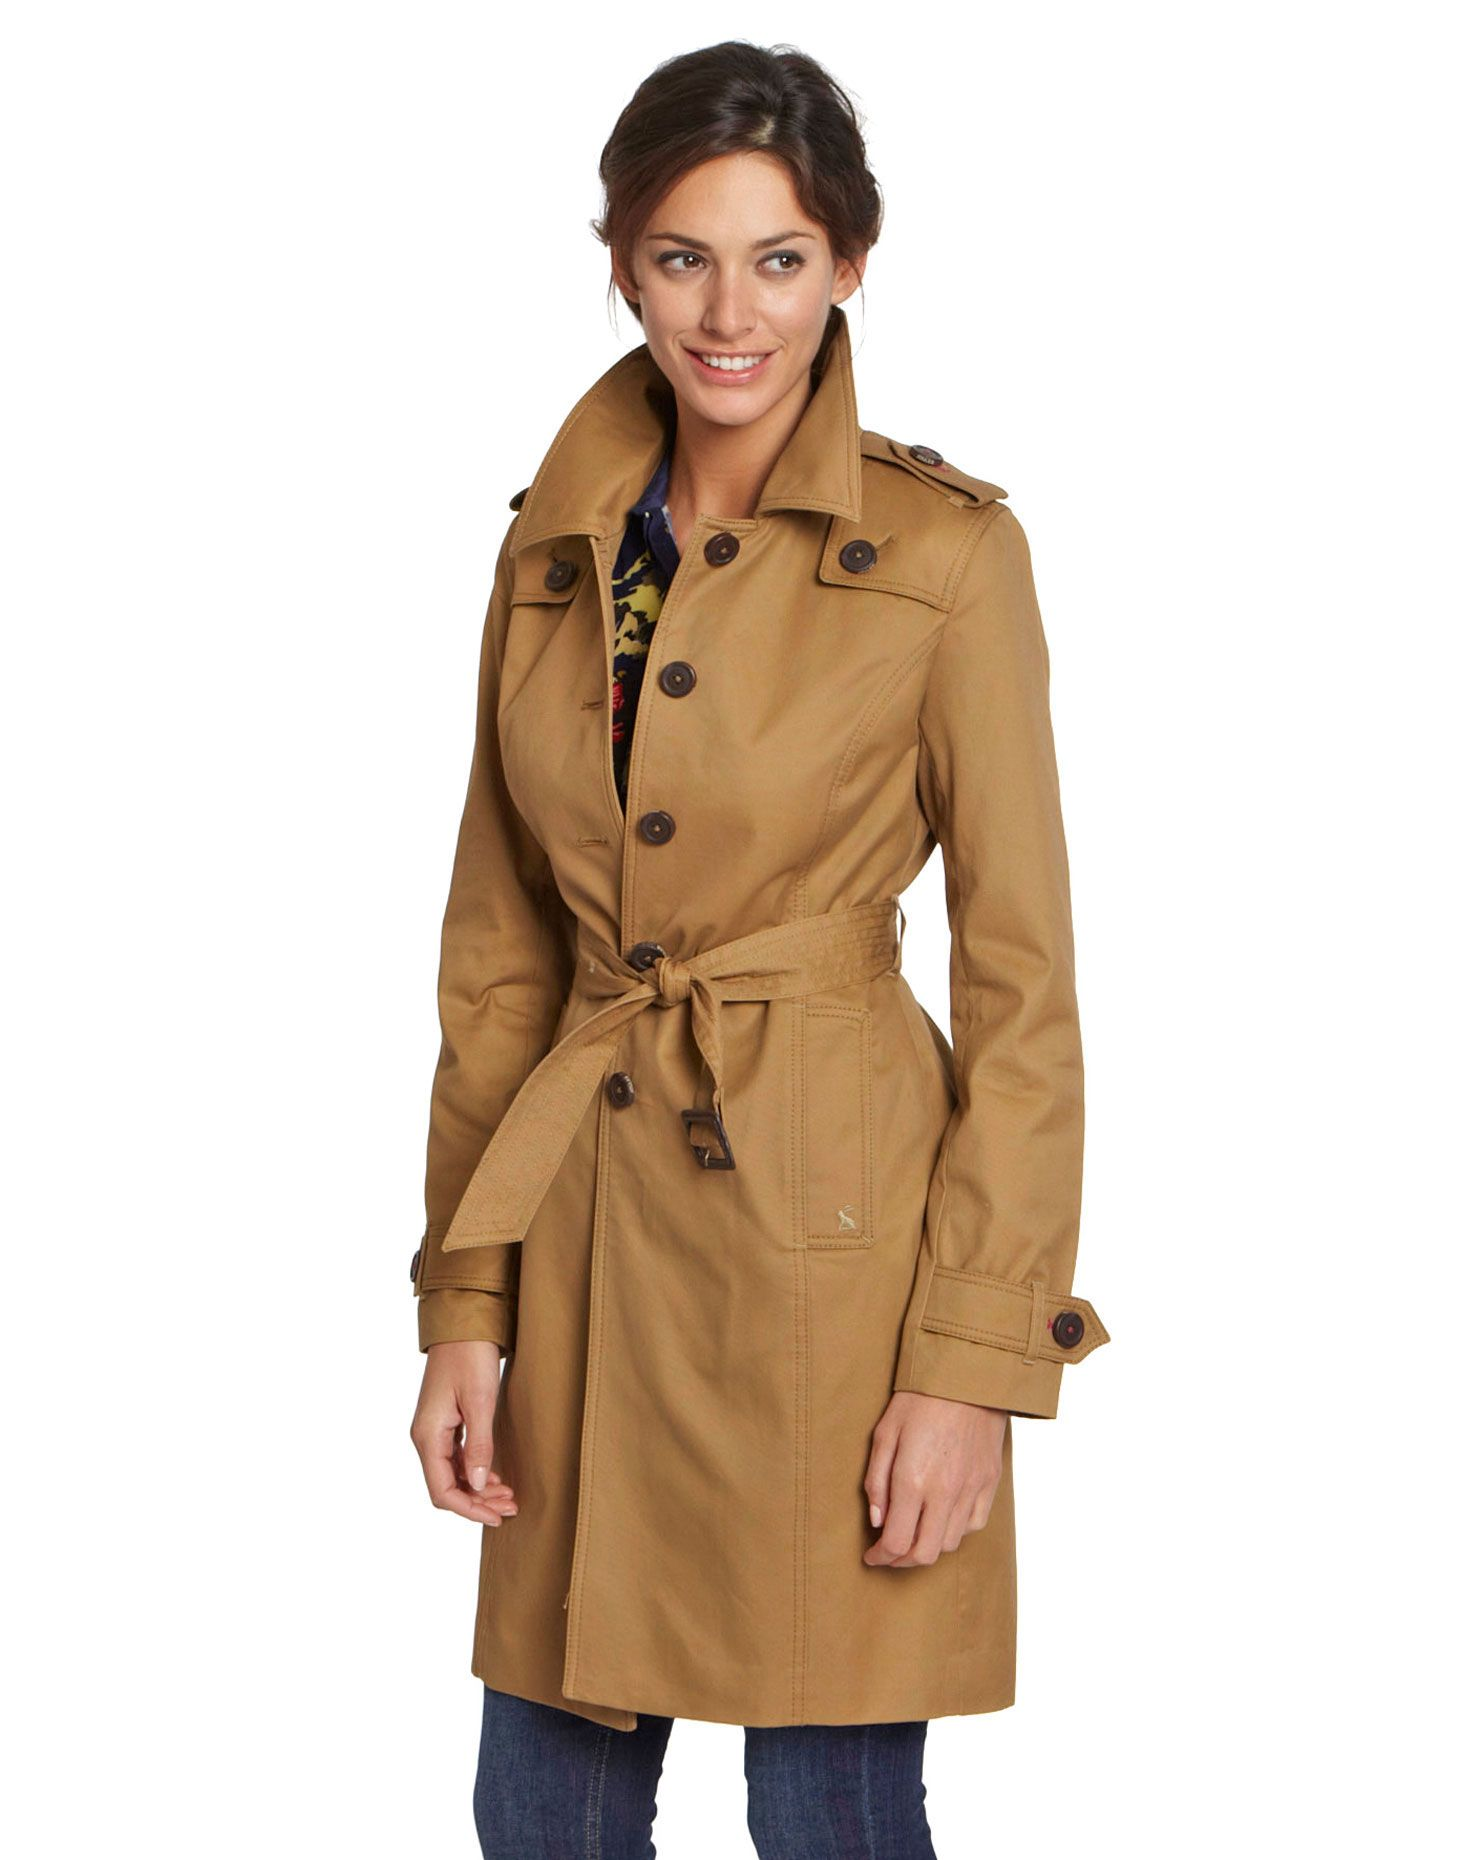 Perfect Womens Trench Coat : Womens Trench Coat1 | Perfect Womens ...